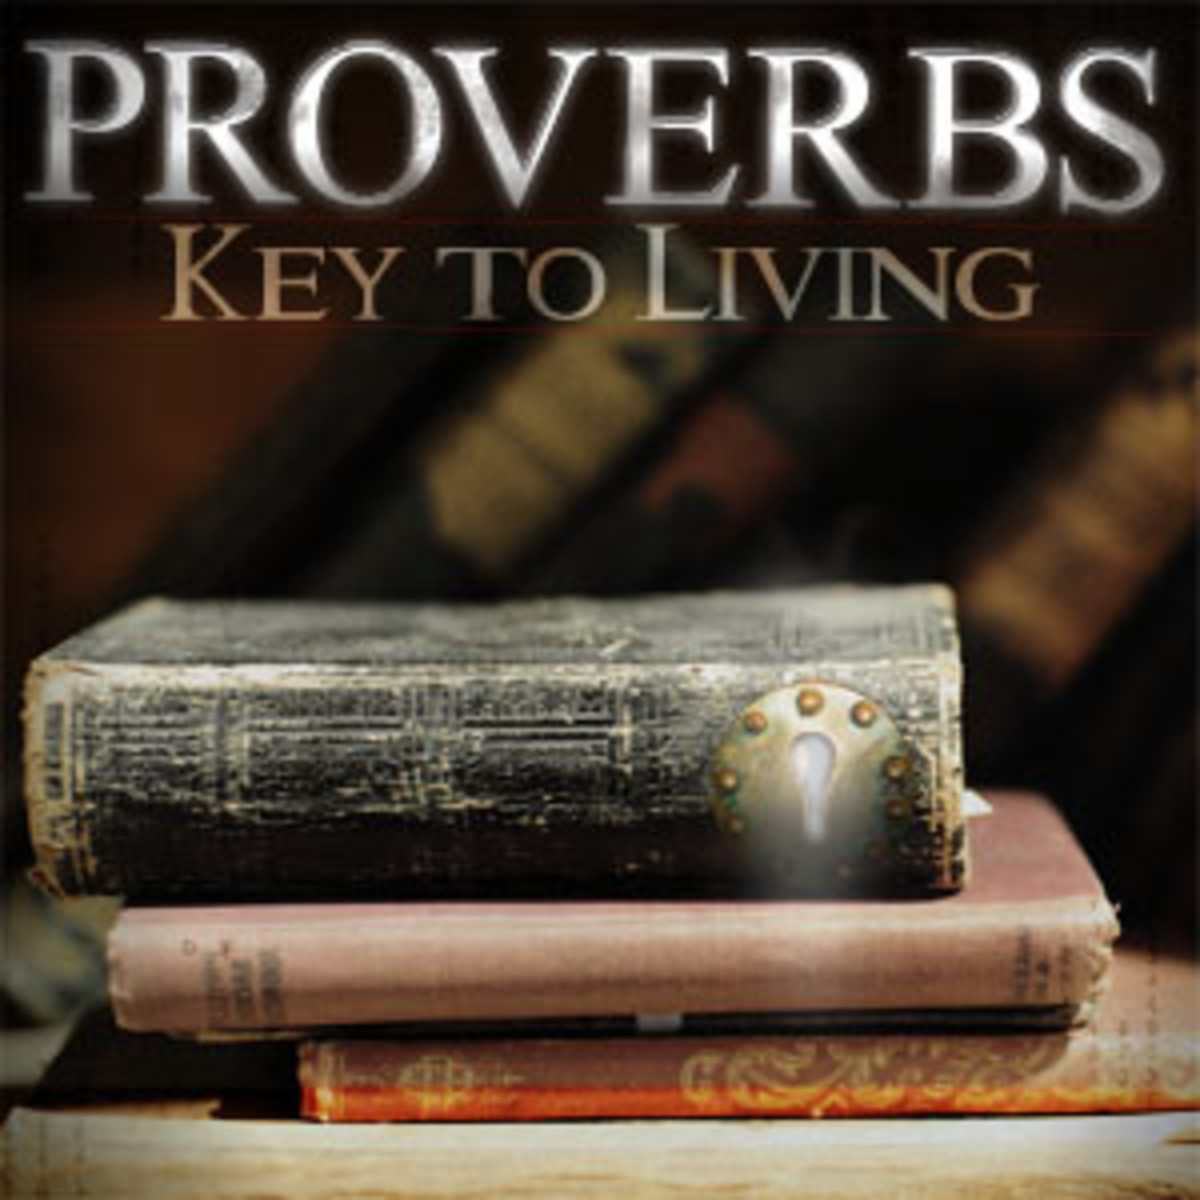 How to Make Better Decisions, The Book of Proverbs